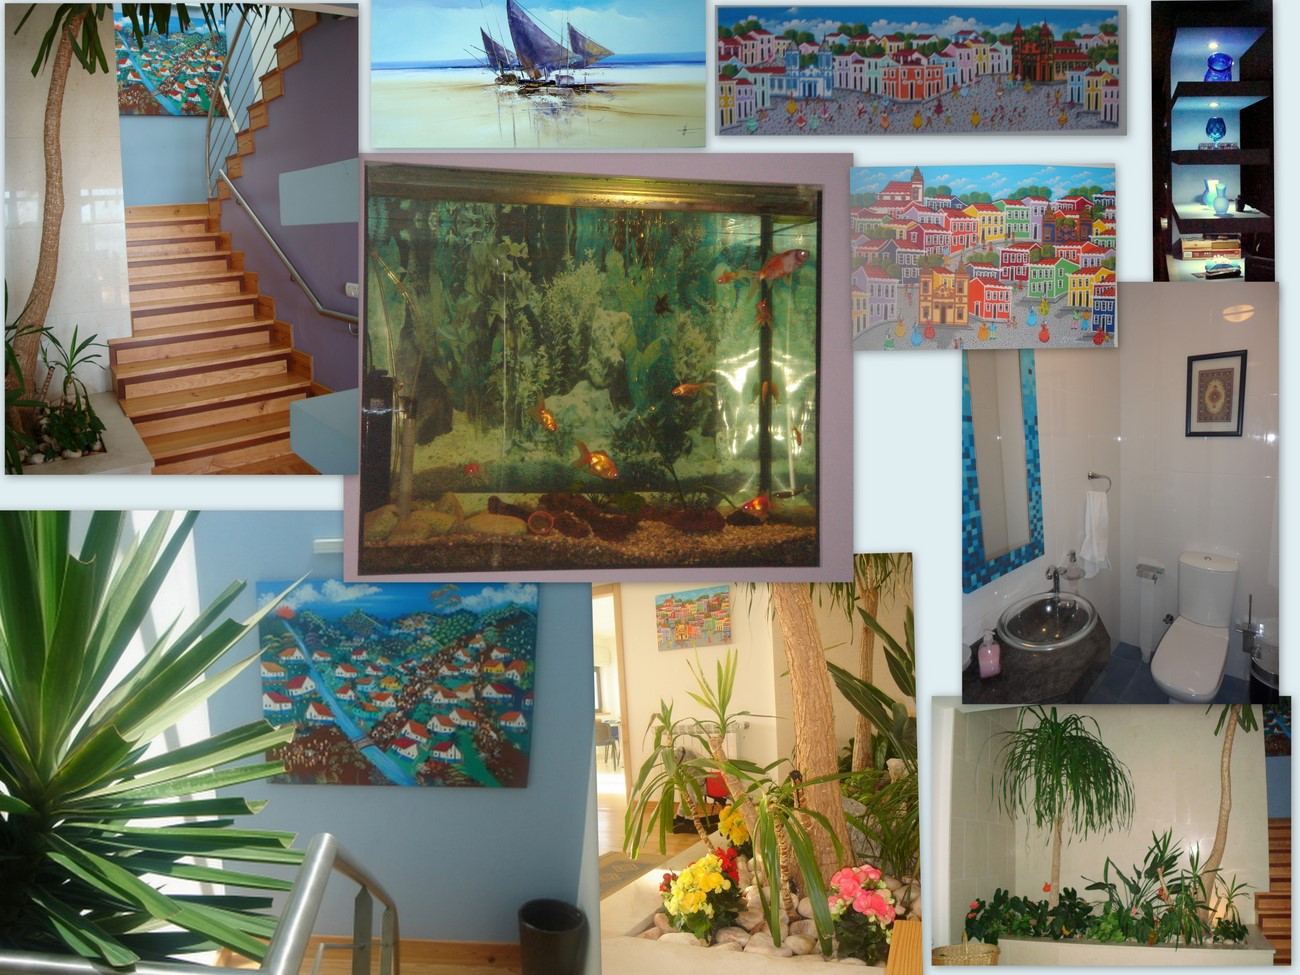 living room's built-in-fish-tank, WC, interior garden, artwork